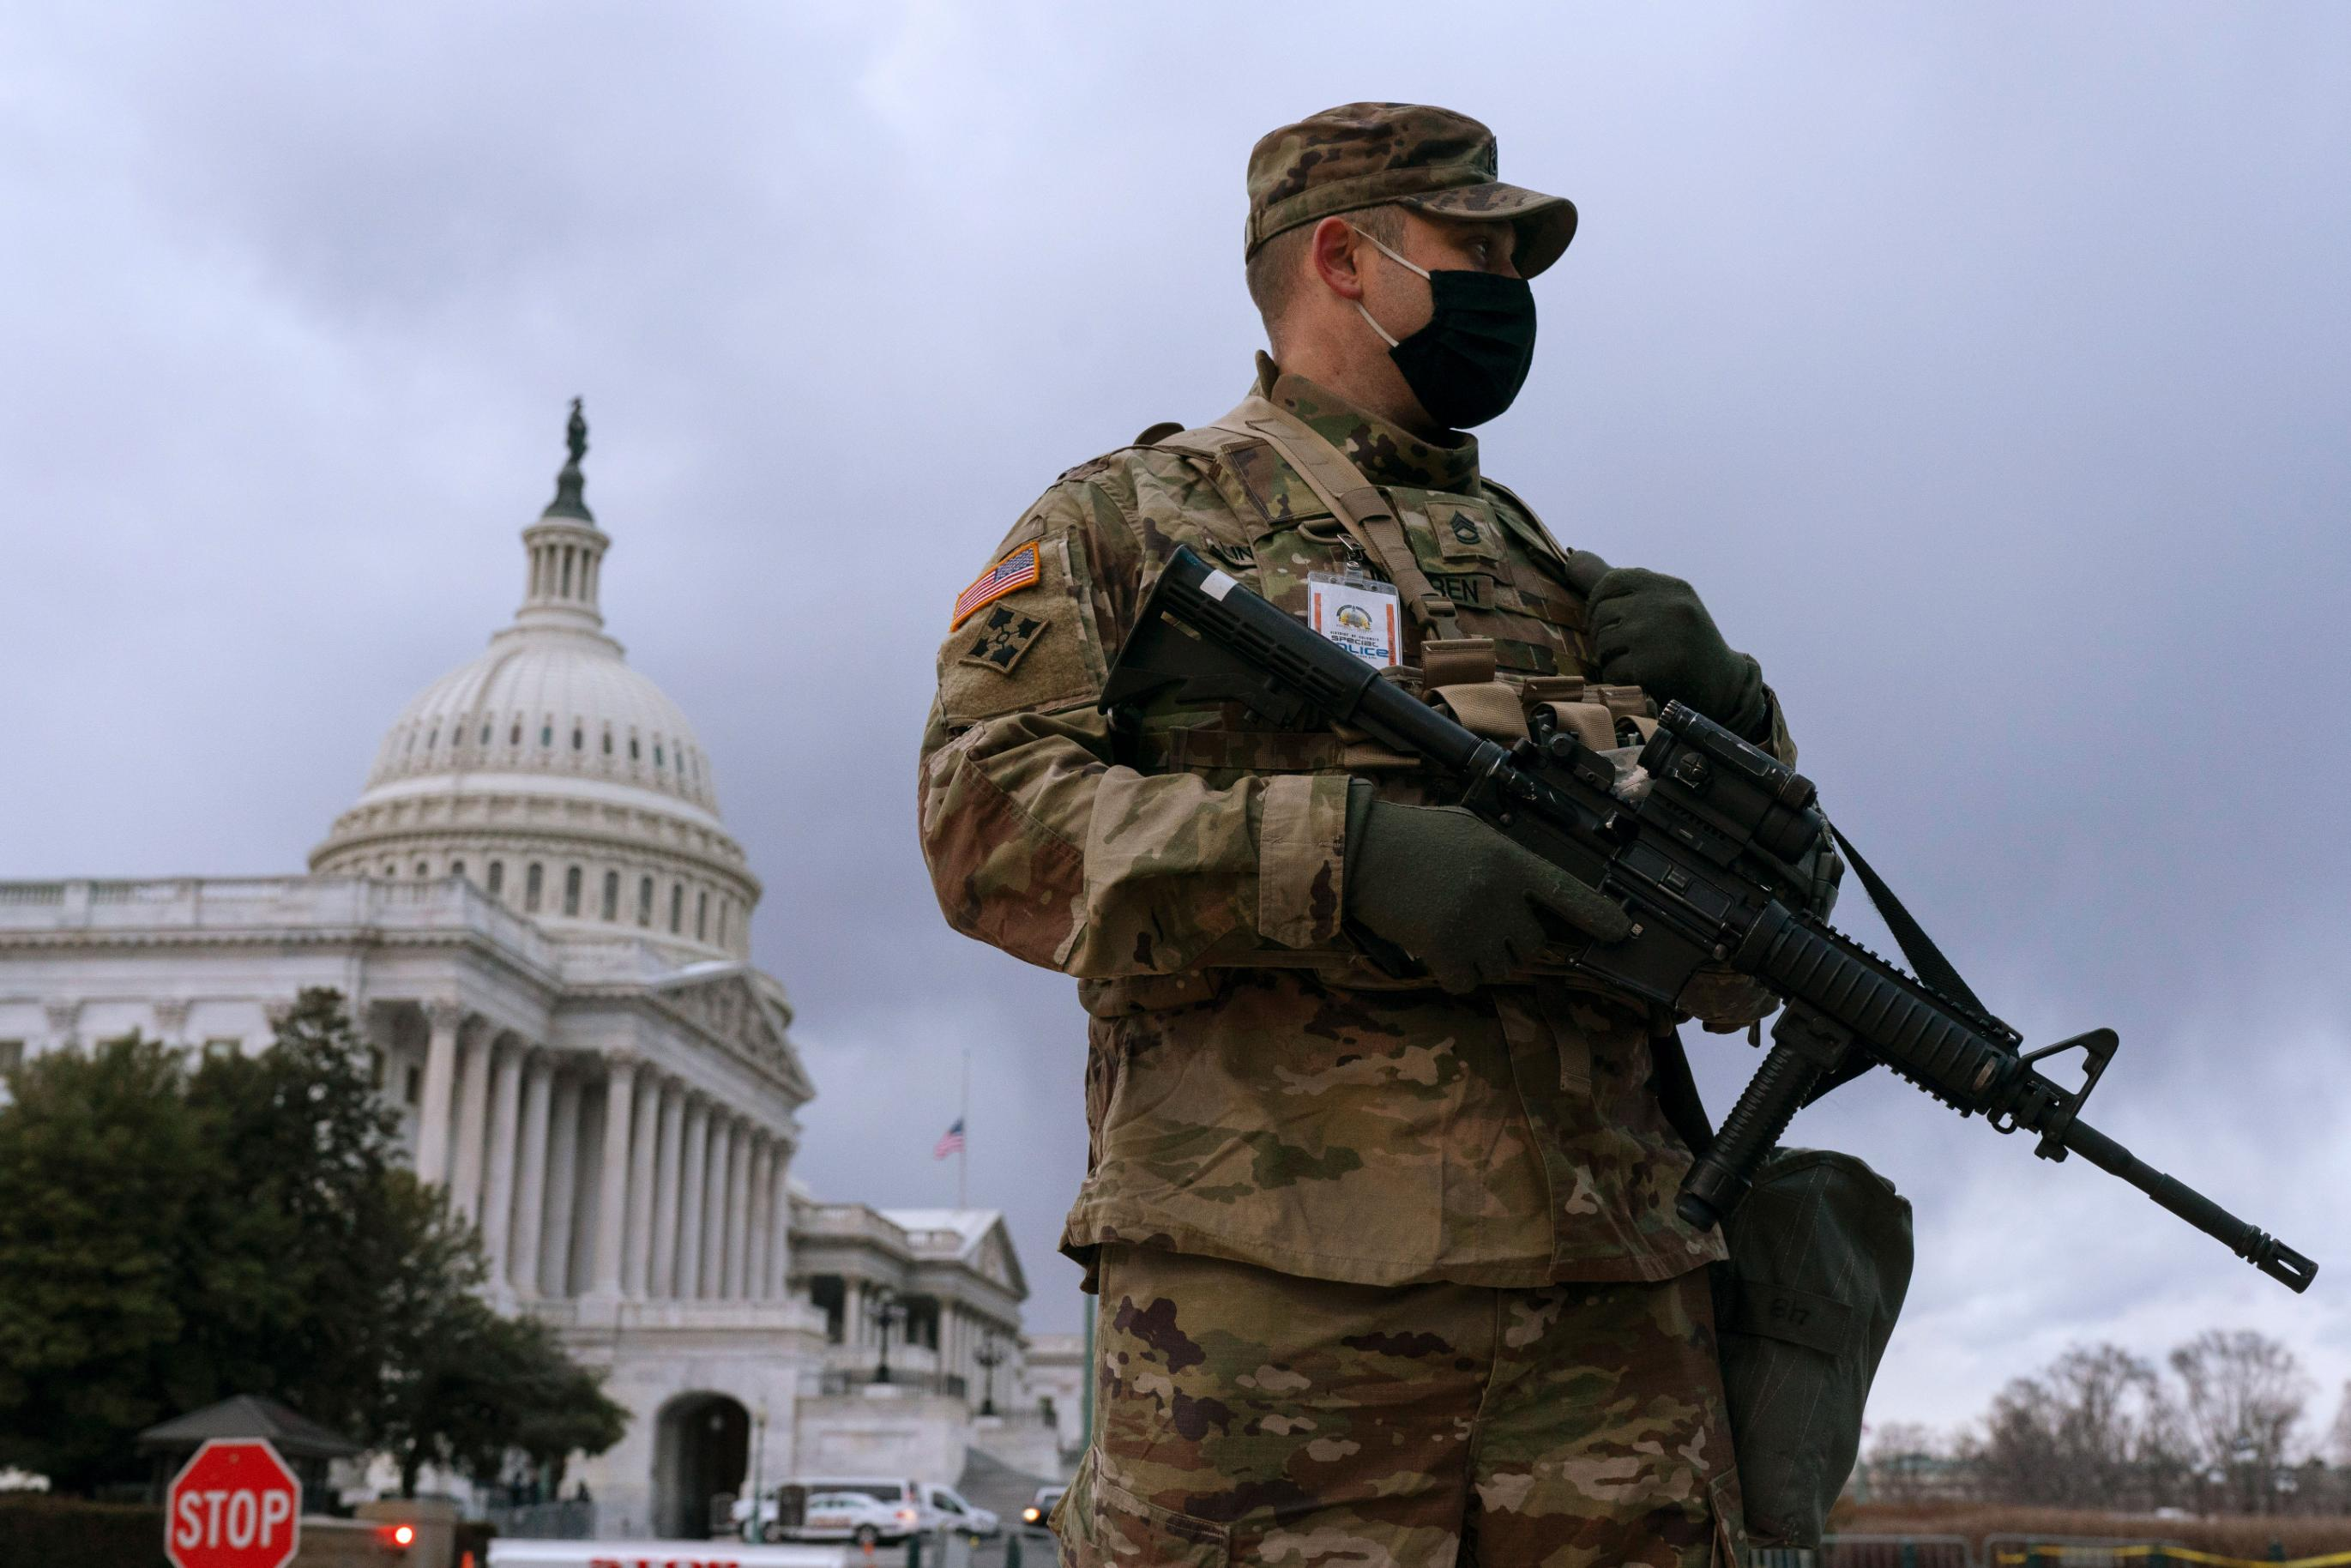 Tight security at capitols across the country as Joe Biden is inaugurated